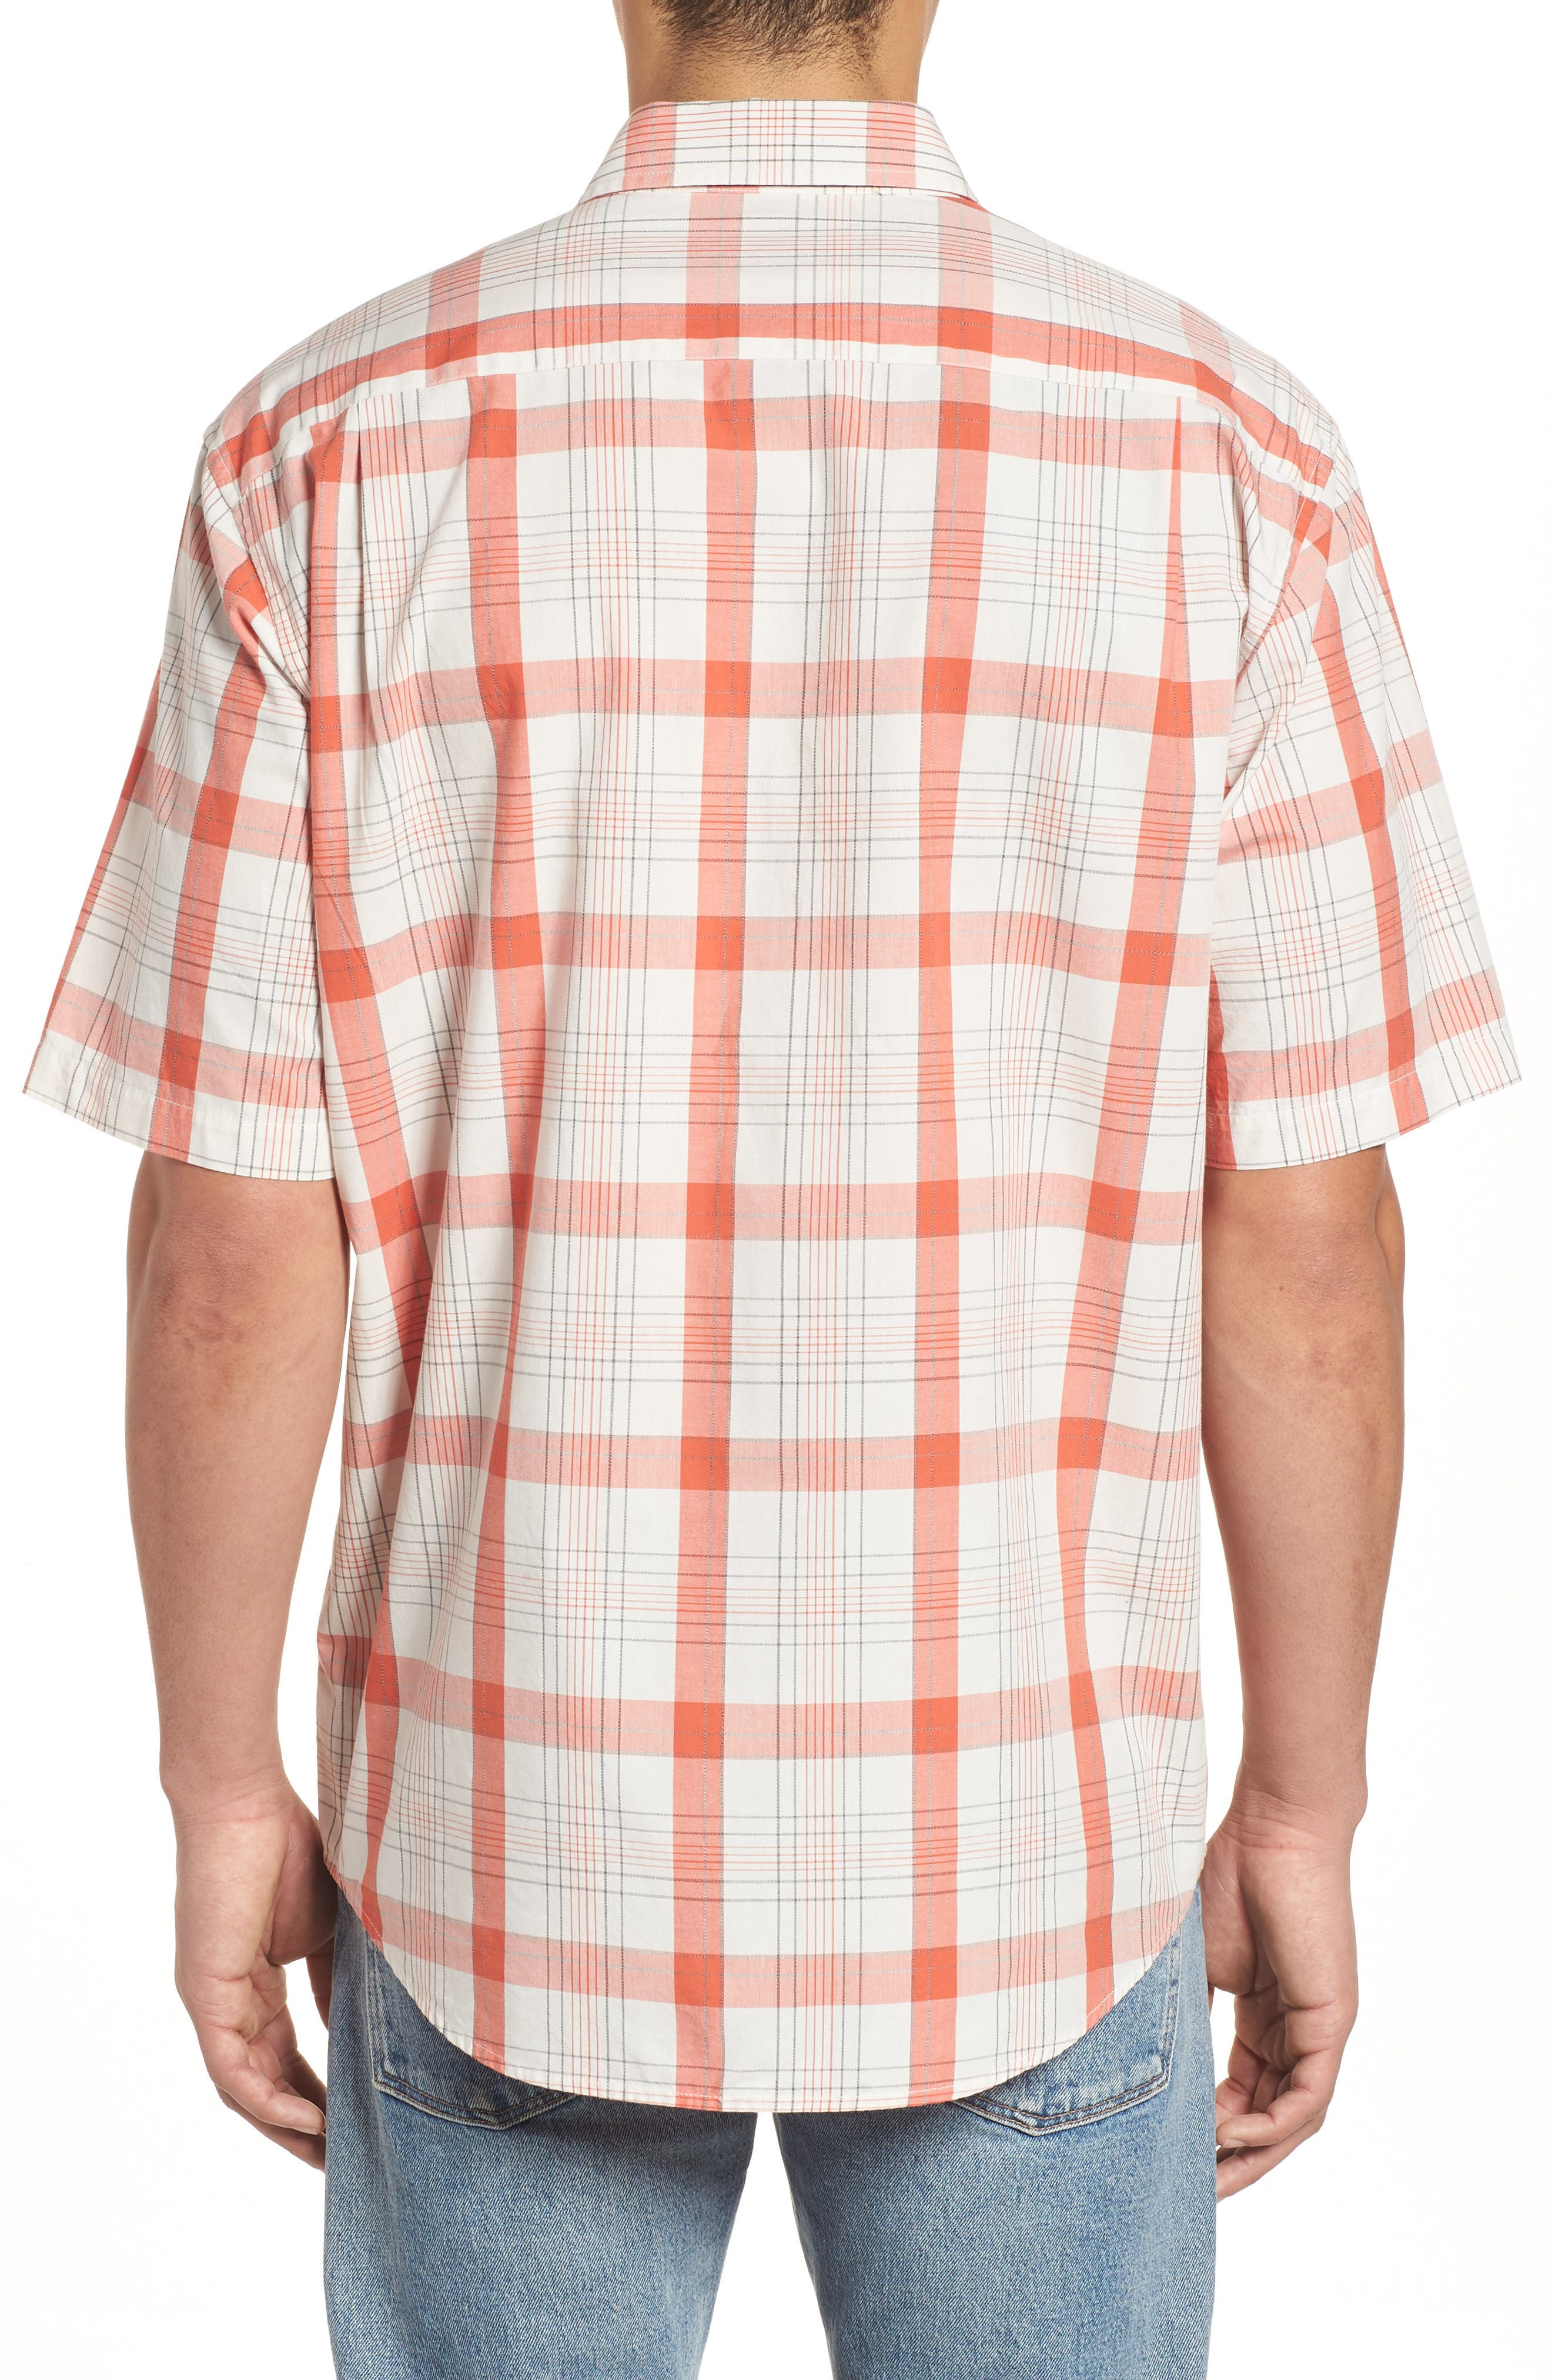 Clear Lake Short Sleeve Woven Shirt,                             Alternate thumbnail 3, color,                             Coral Plaid